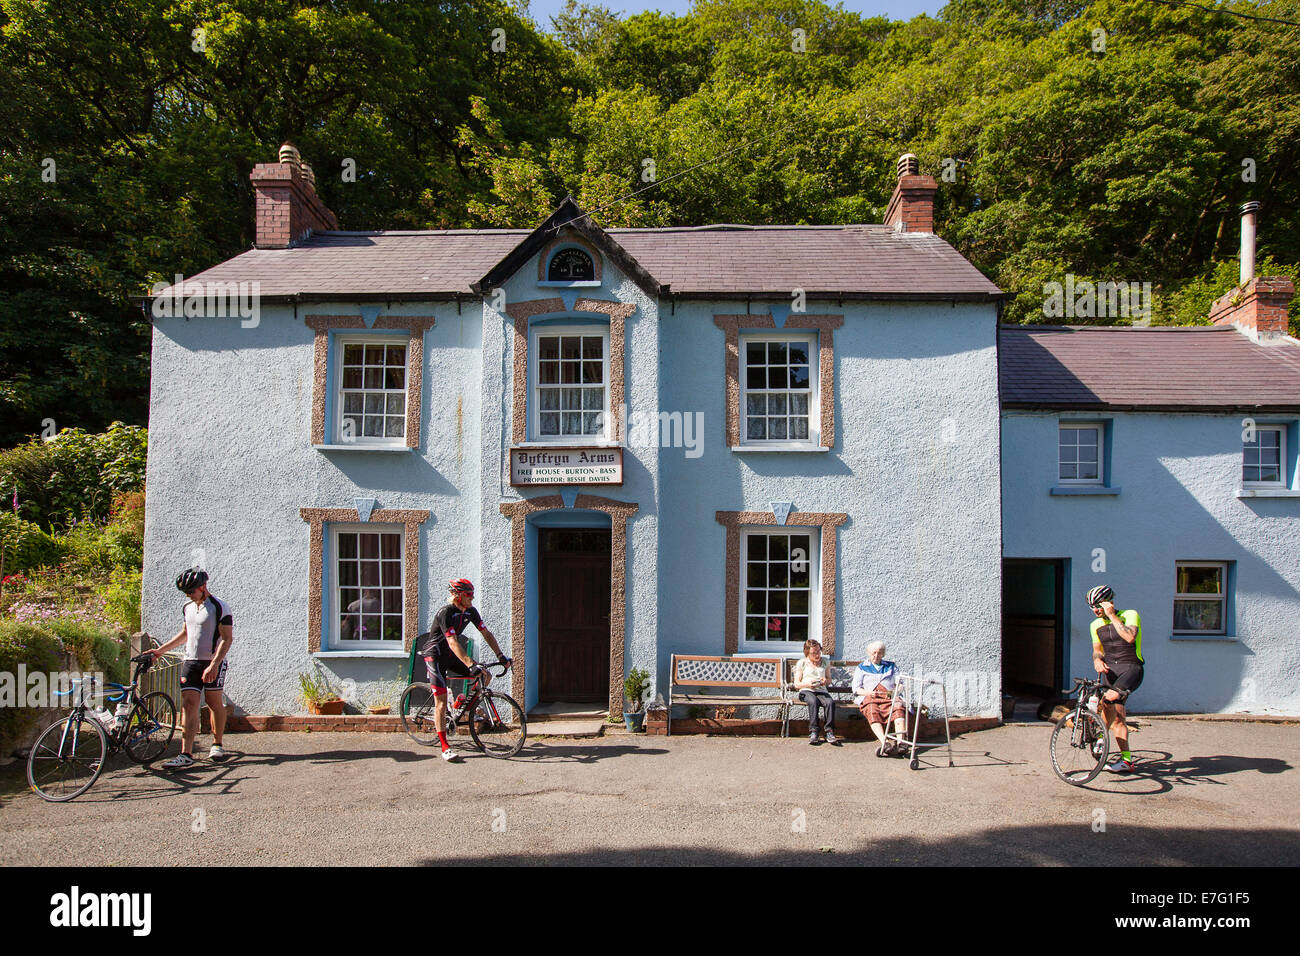 Three cyclists prepare to leave a village pub in Pembrokeshire, Wales - Stock Image